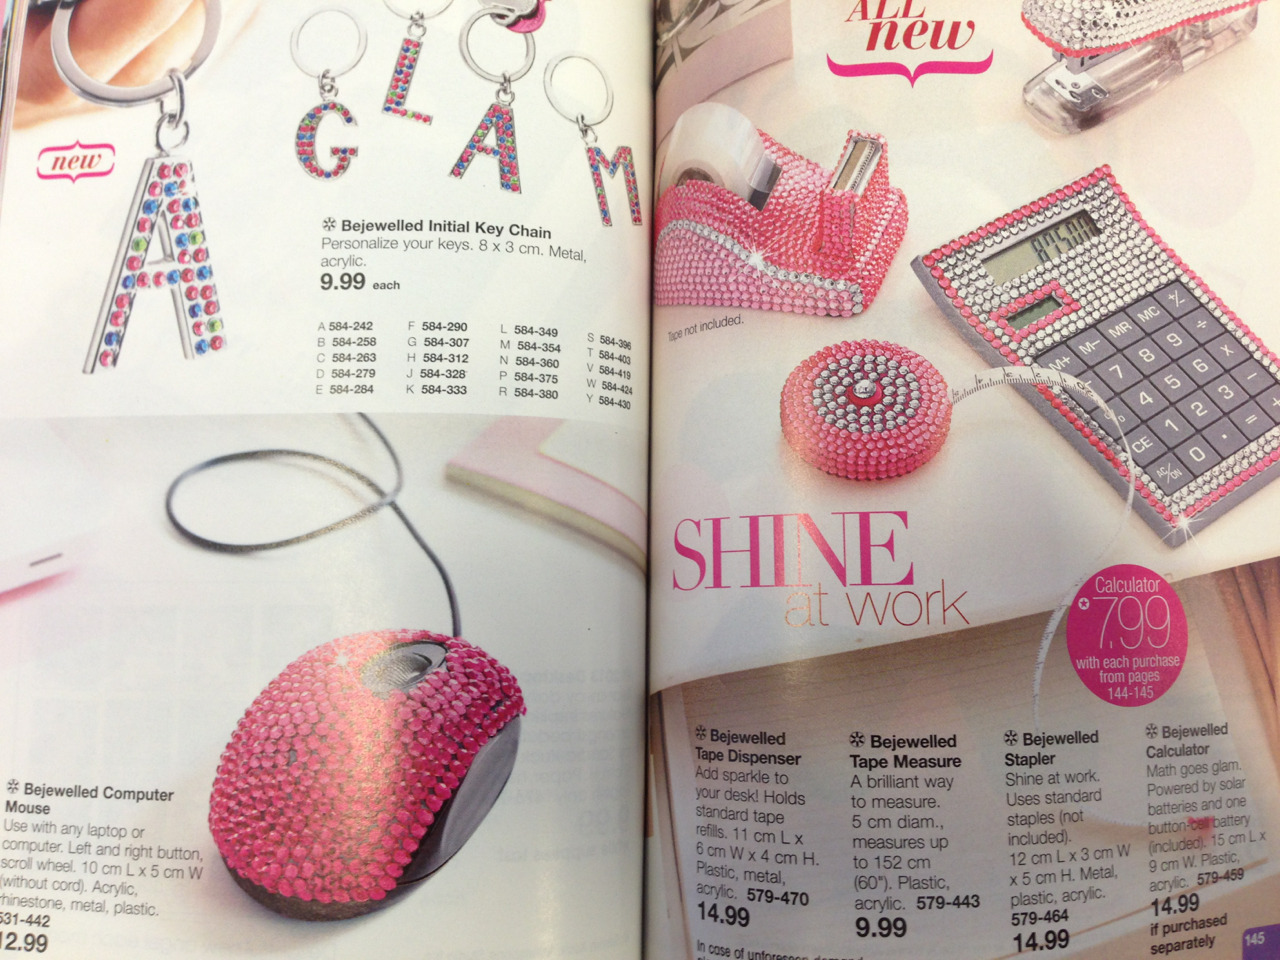 There's not enough bedazzle. (Avon booklet)